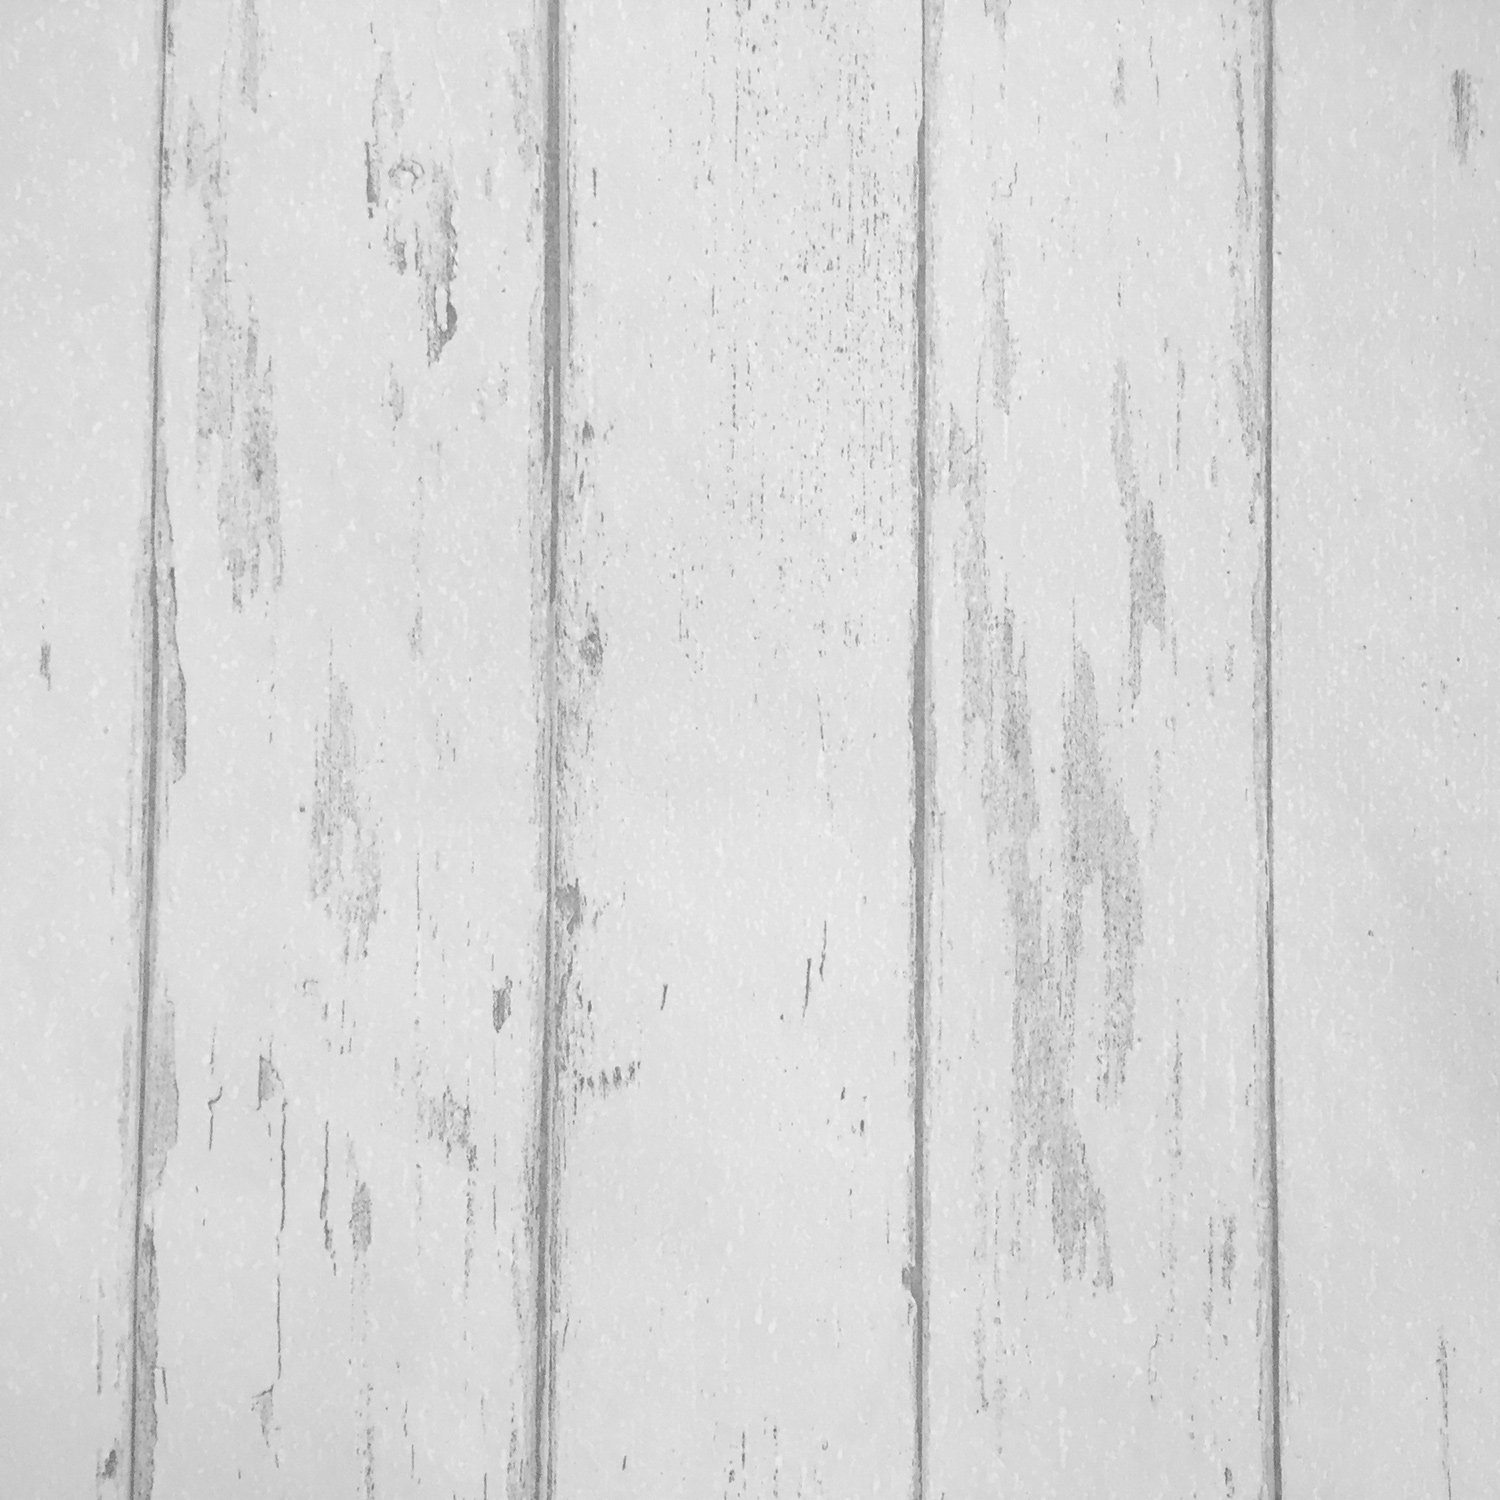 Country Rustic Wood Plank Wallpaper, Off White Distressed Wood Panel Wallpaper Roll 20.8 inch x 32.8 Feet (Non-Adhesive), 1 Roll Pack